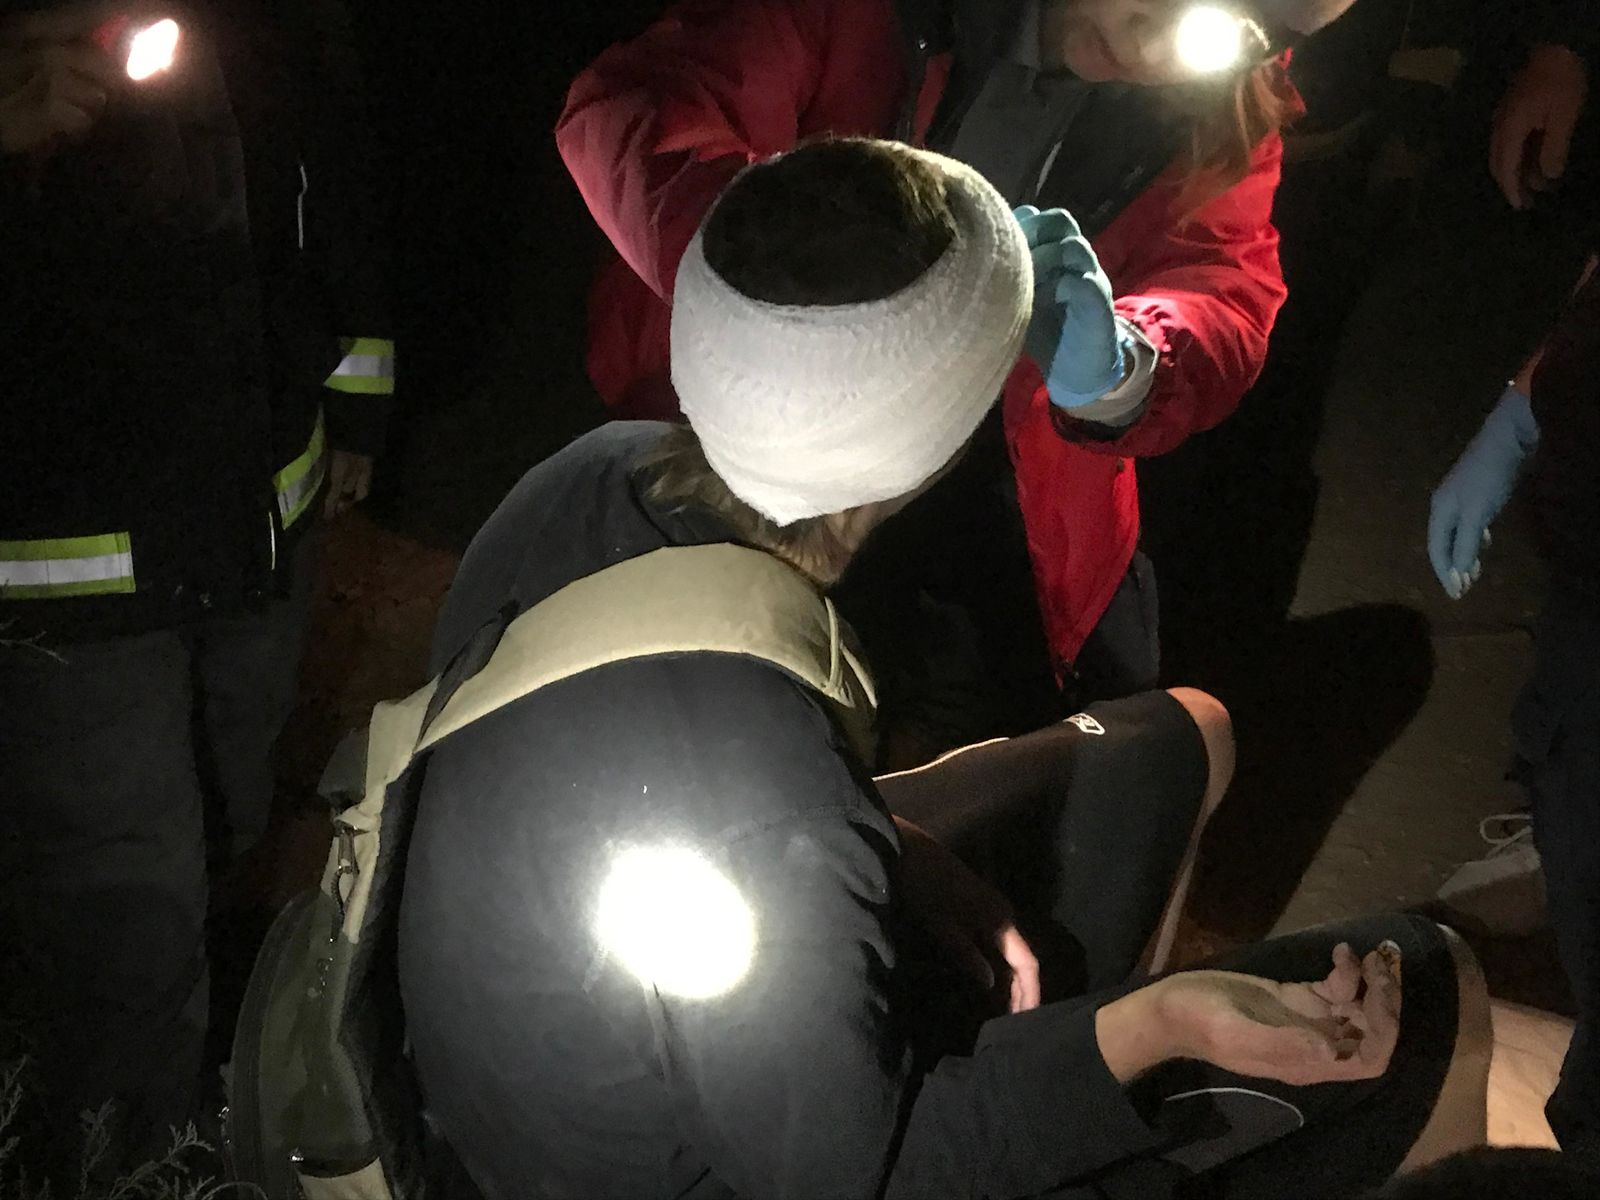 Utah County Sheriff's Office wants to remind everyone that alcohol and drugs are always a bad combination when two drug and alcohol arrests were made within hours of each other on Tuesday. (Photo Courtesy of Utah County Sheriff's Office)